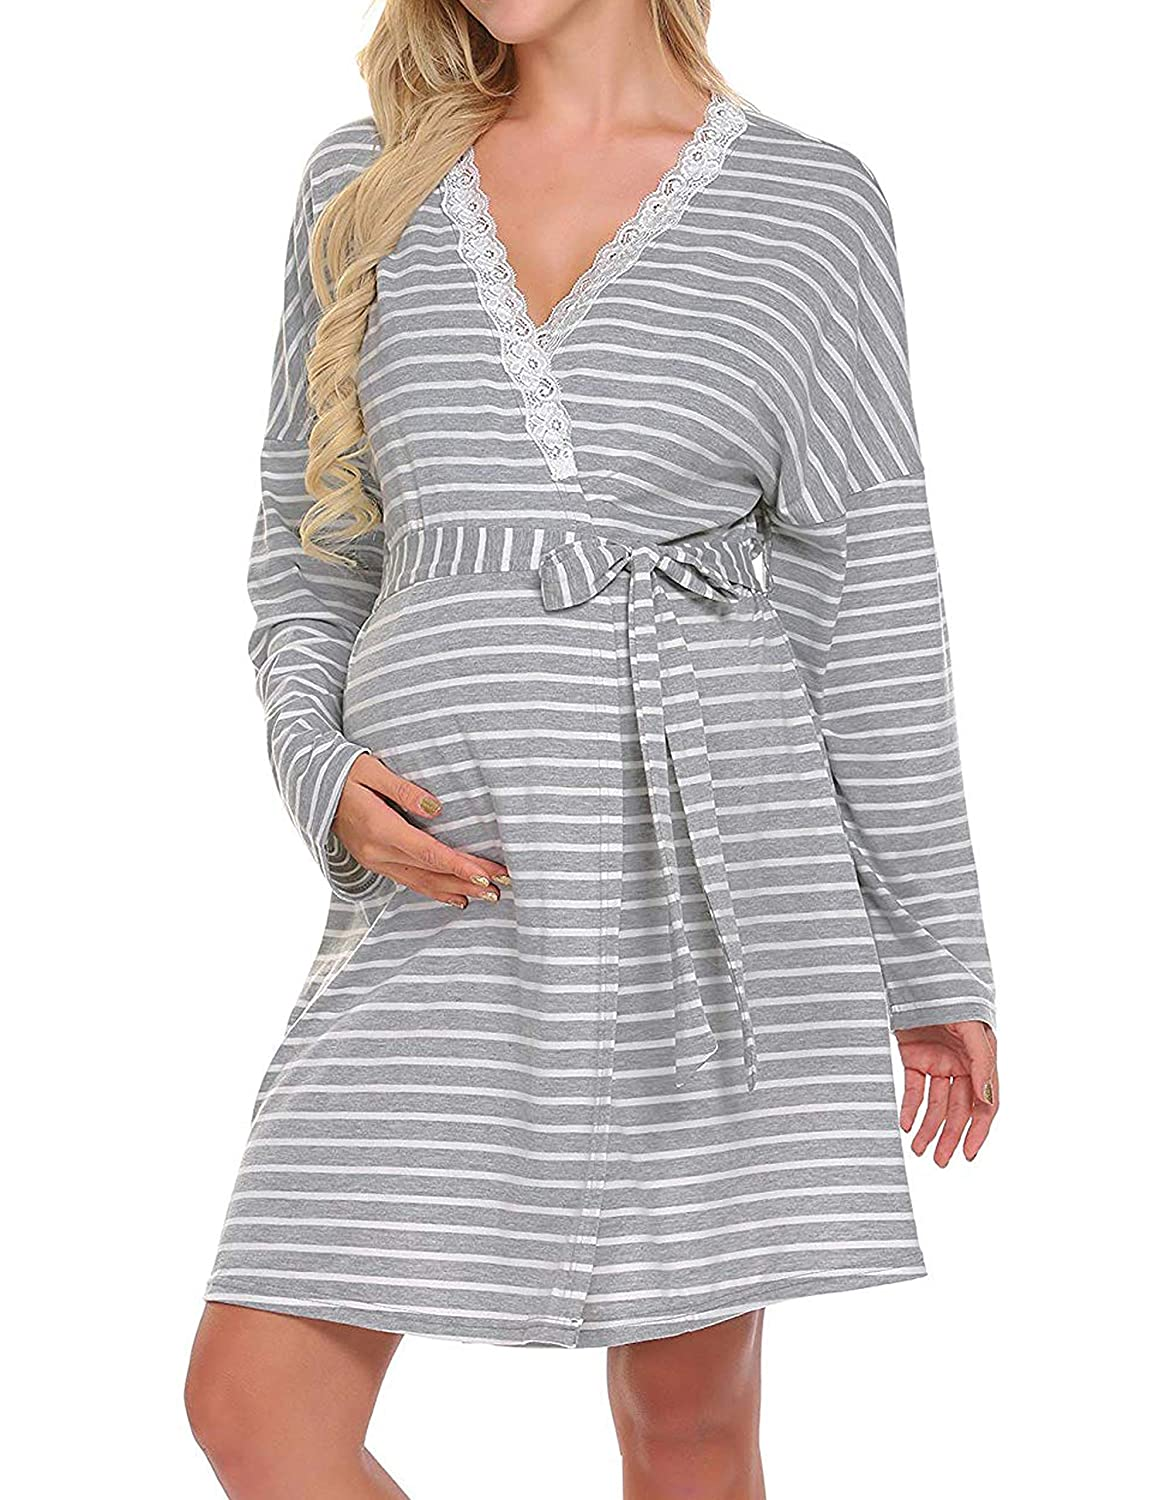 Odosalii Women's Striped Maternity Dress Labor Nursing Nightgowns Lace Nightdress Sleepwear